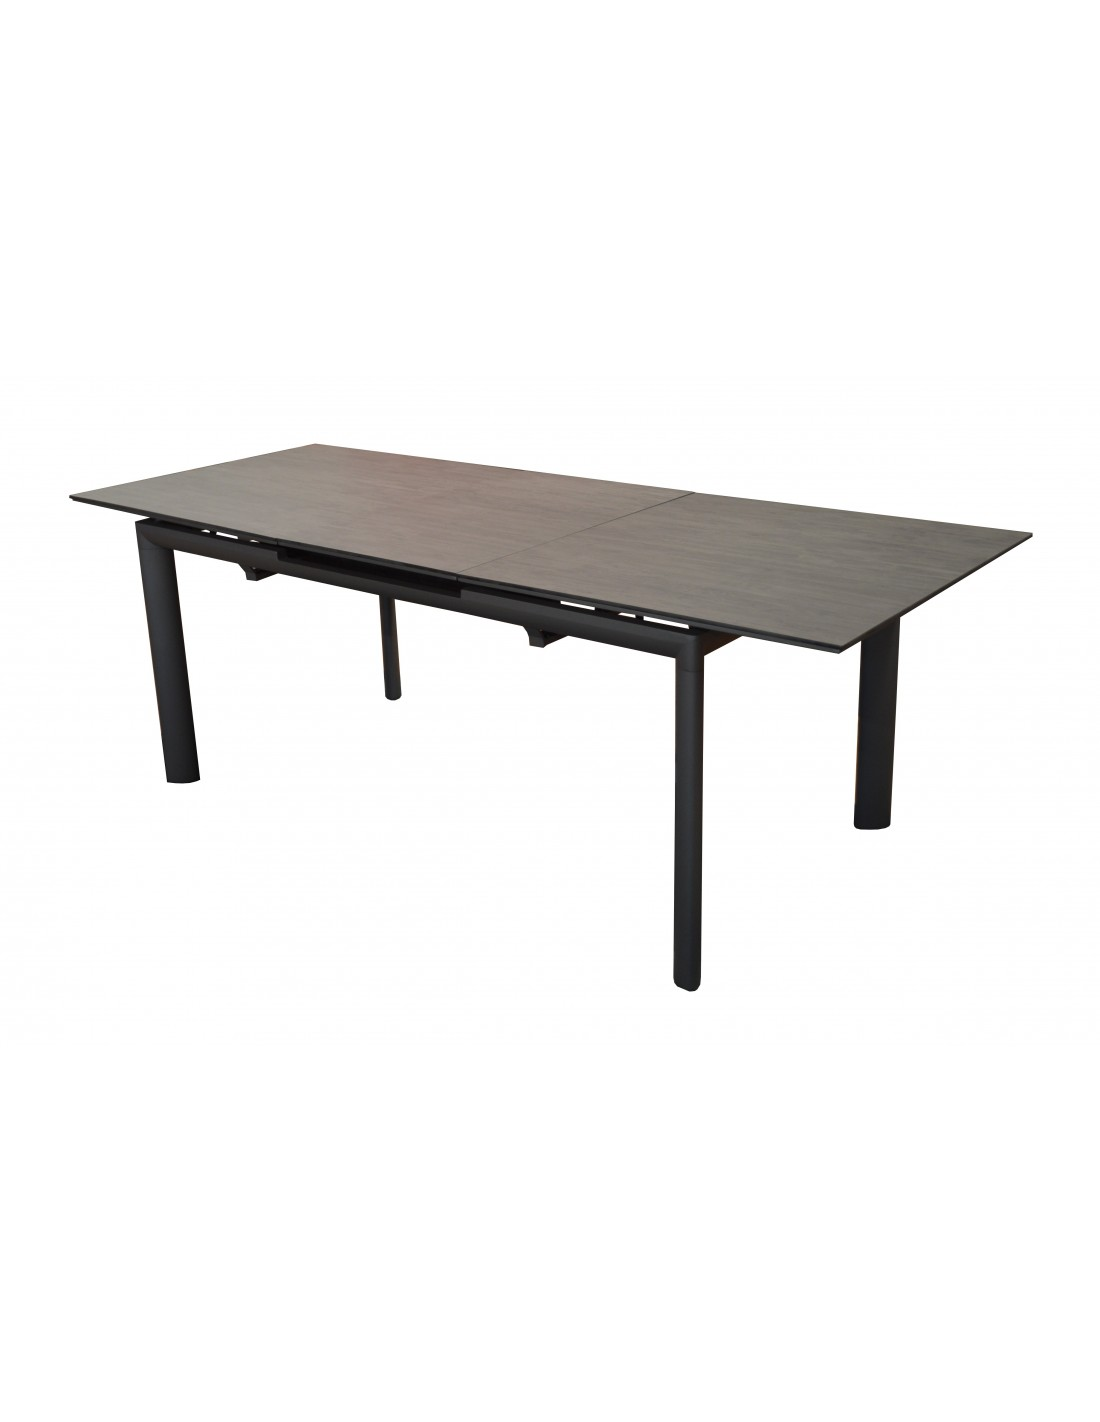 Table de jardin extensible miami en aluminium et hpl - Table de jardin extensible aluminium ...